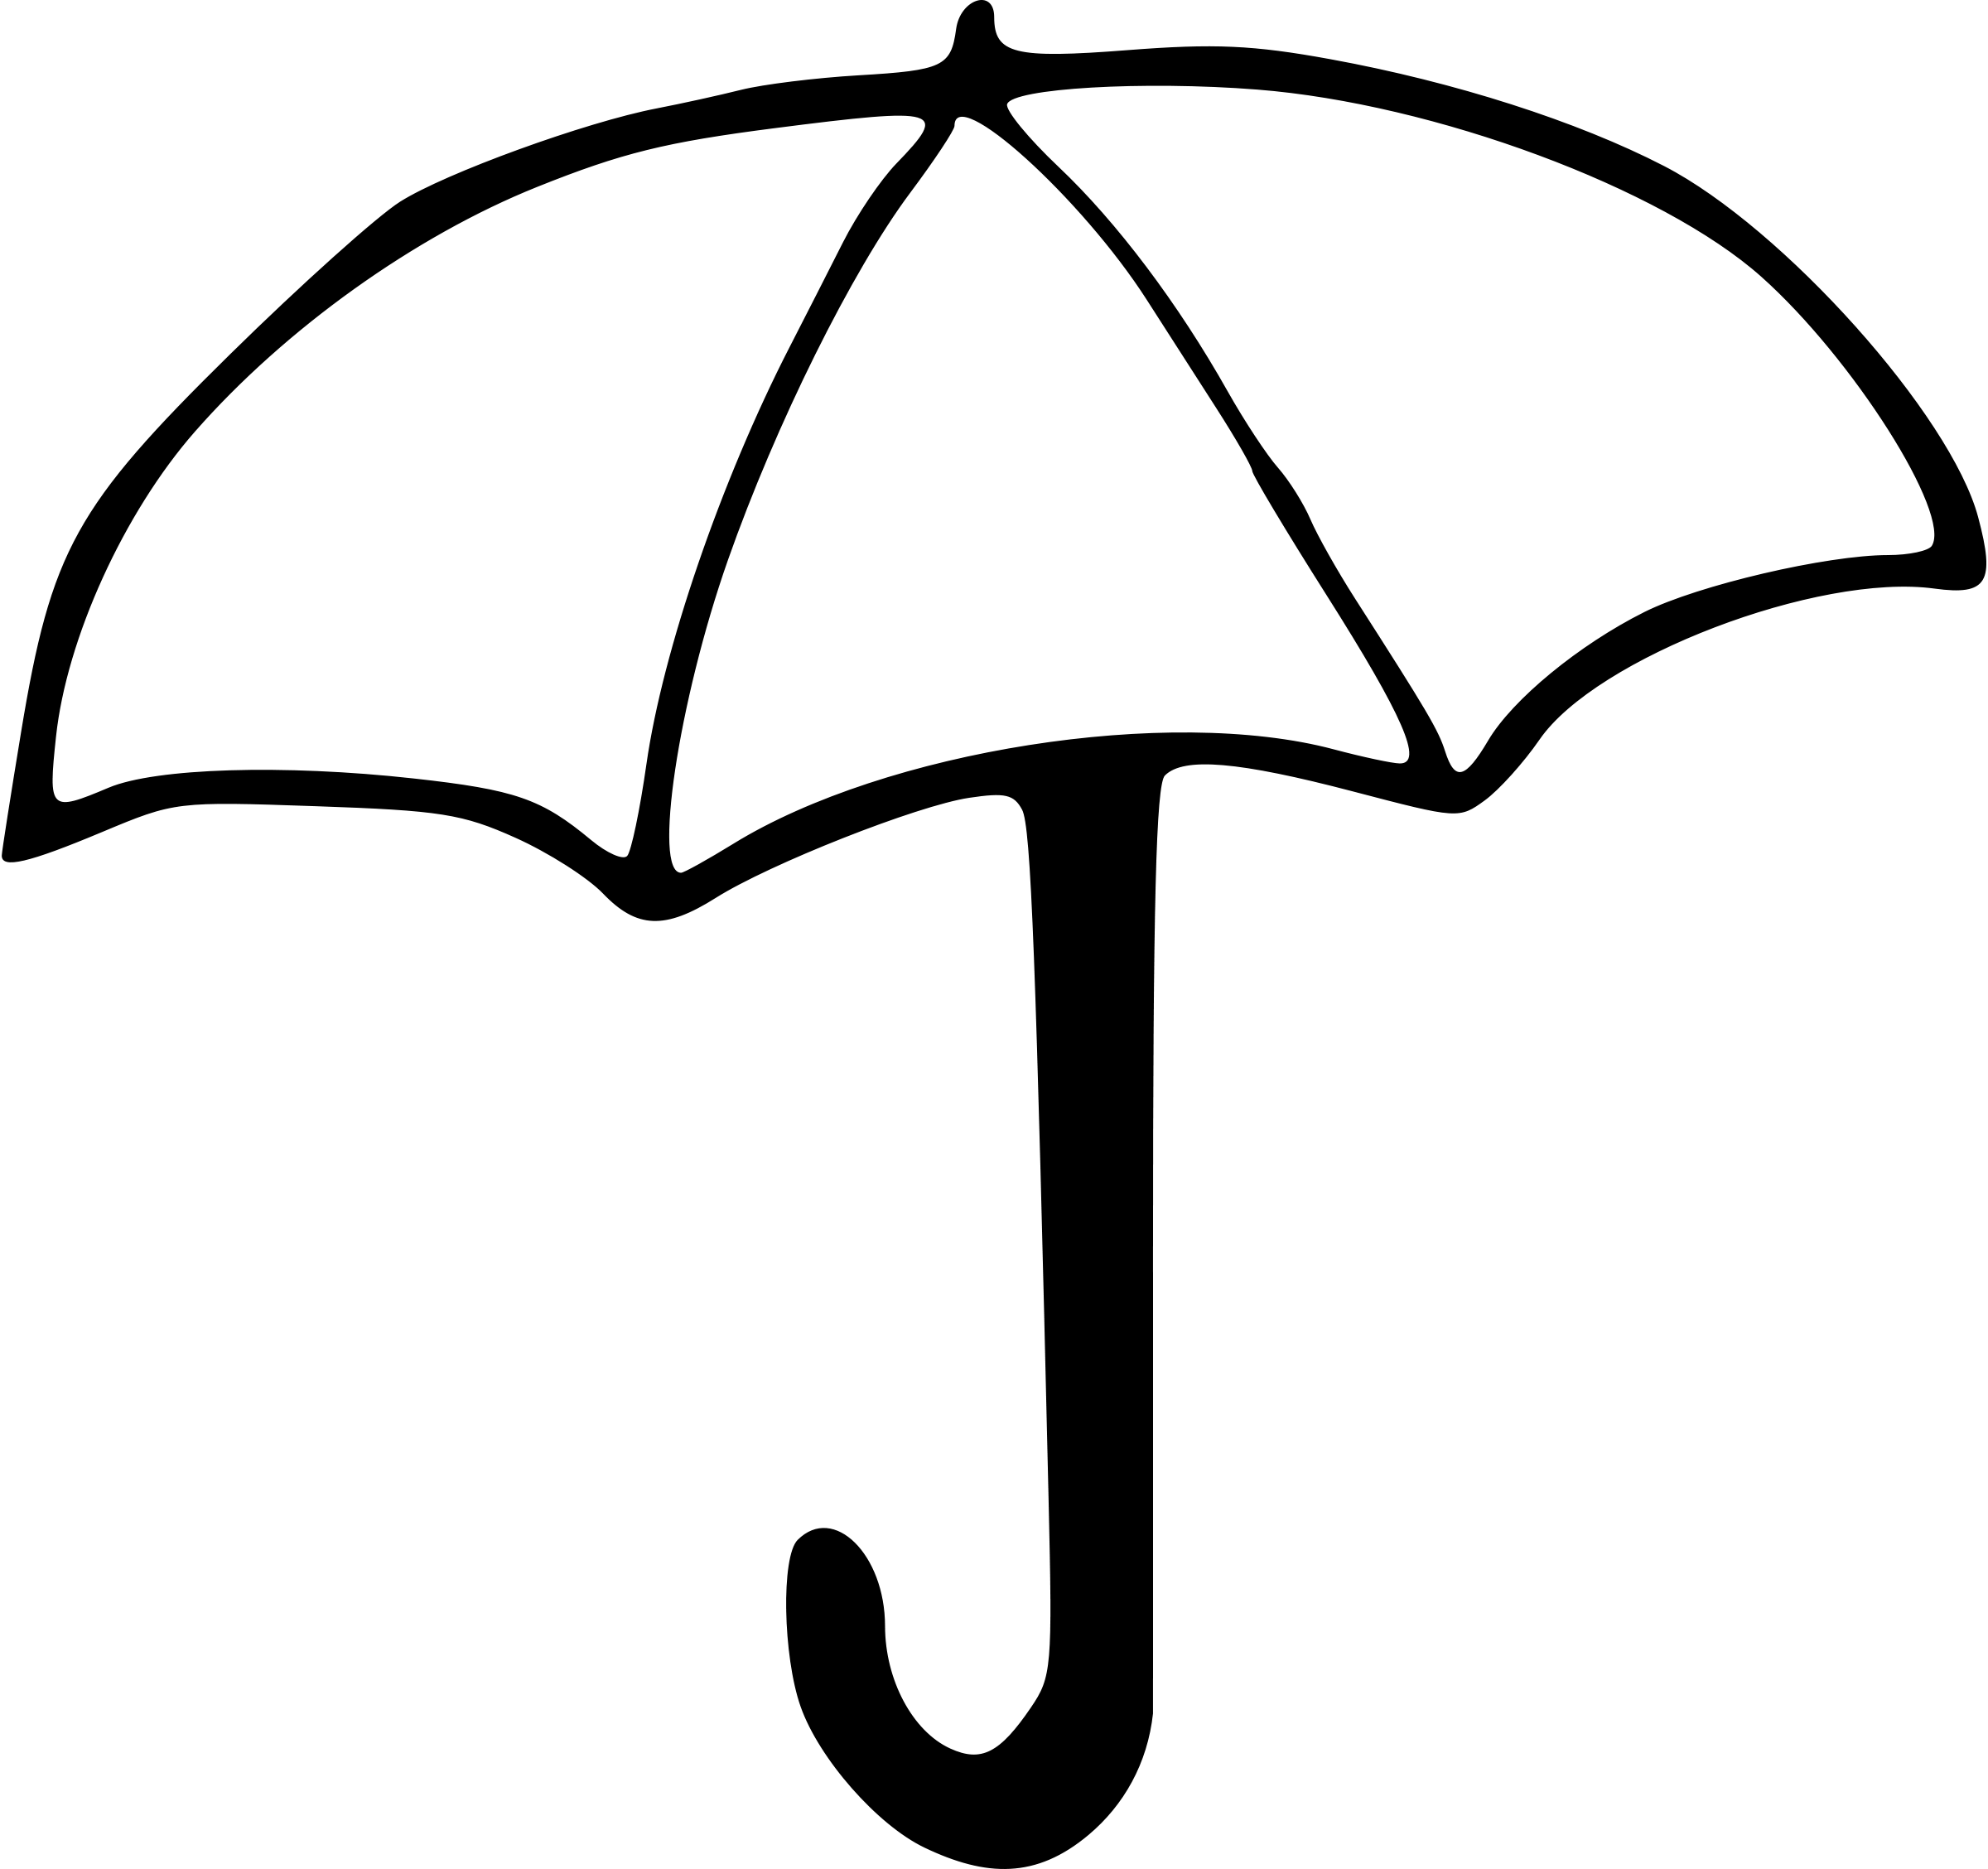 Umbrella Black And White Umbrella Clipart Black And White